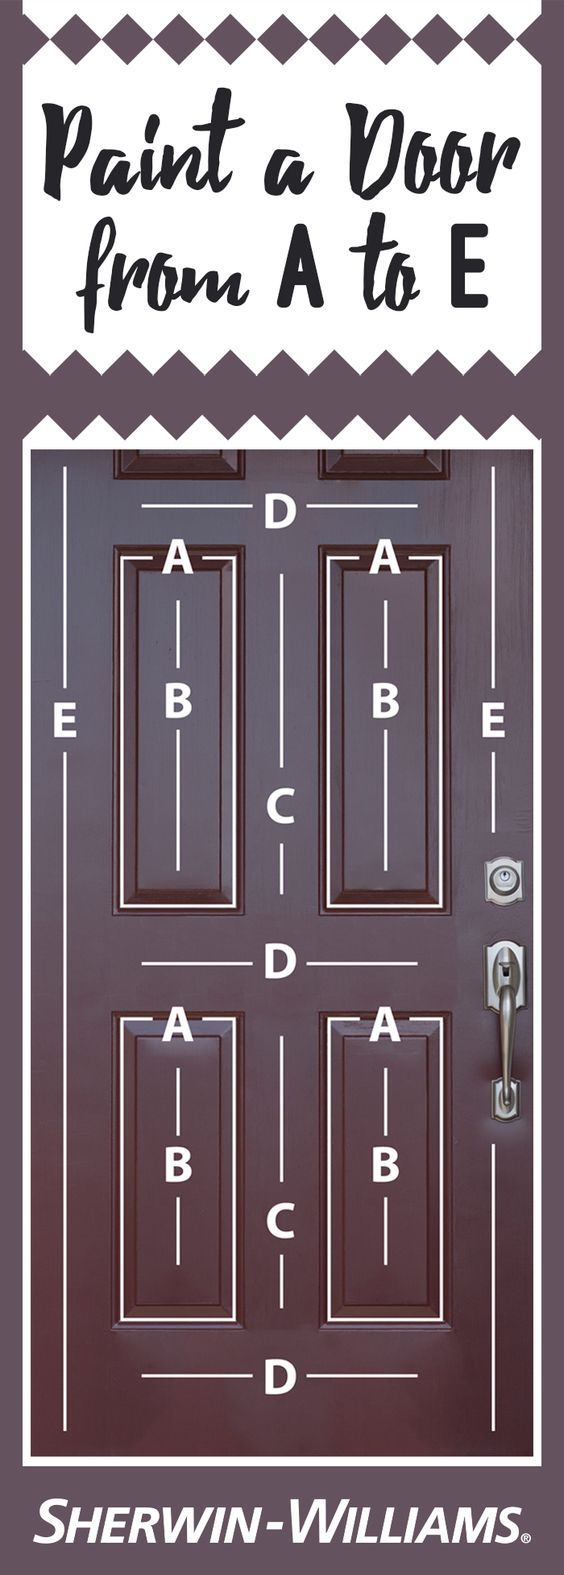 Looking for the best way to paint a beveled door? We've mapped it out for you! Start with Area A, using an angled brush to paint all recessed areas. To prevent brush marks on the larger, smooth areas of your door (B-E), line the recessed areas with painter's tape. Next, move on to Area B, painting each subsequent area in alphabetical order. Use a brush or roller, making sure with each stroke that the fresh paint you are overlapping is still wet. This will help to avoid paint streaks. And…